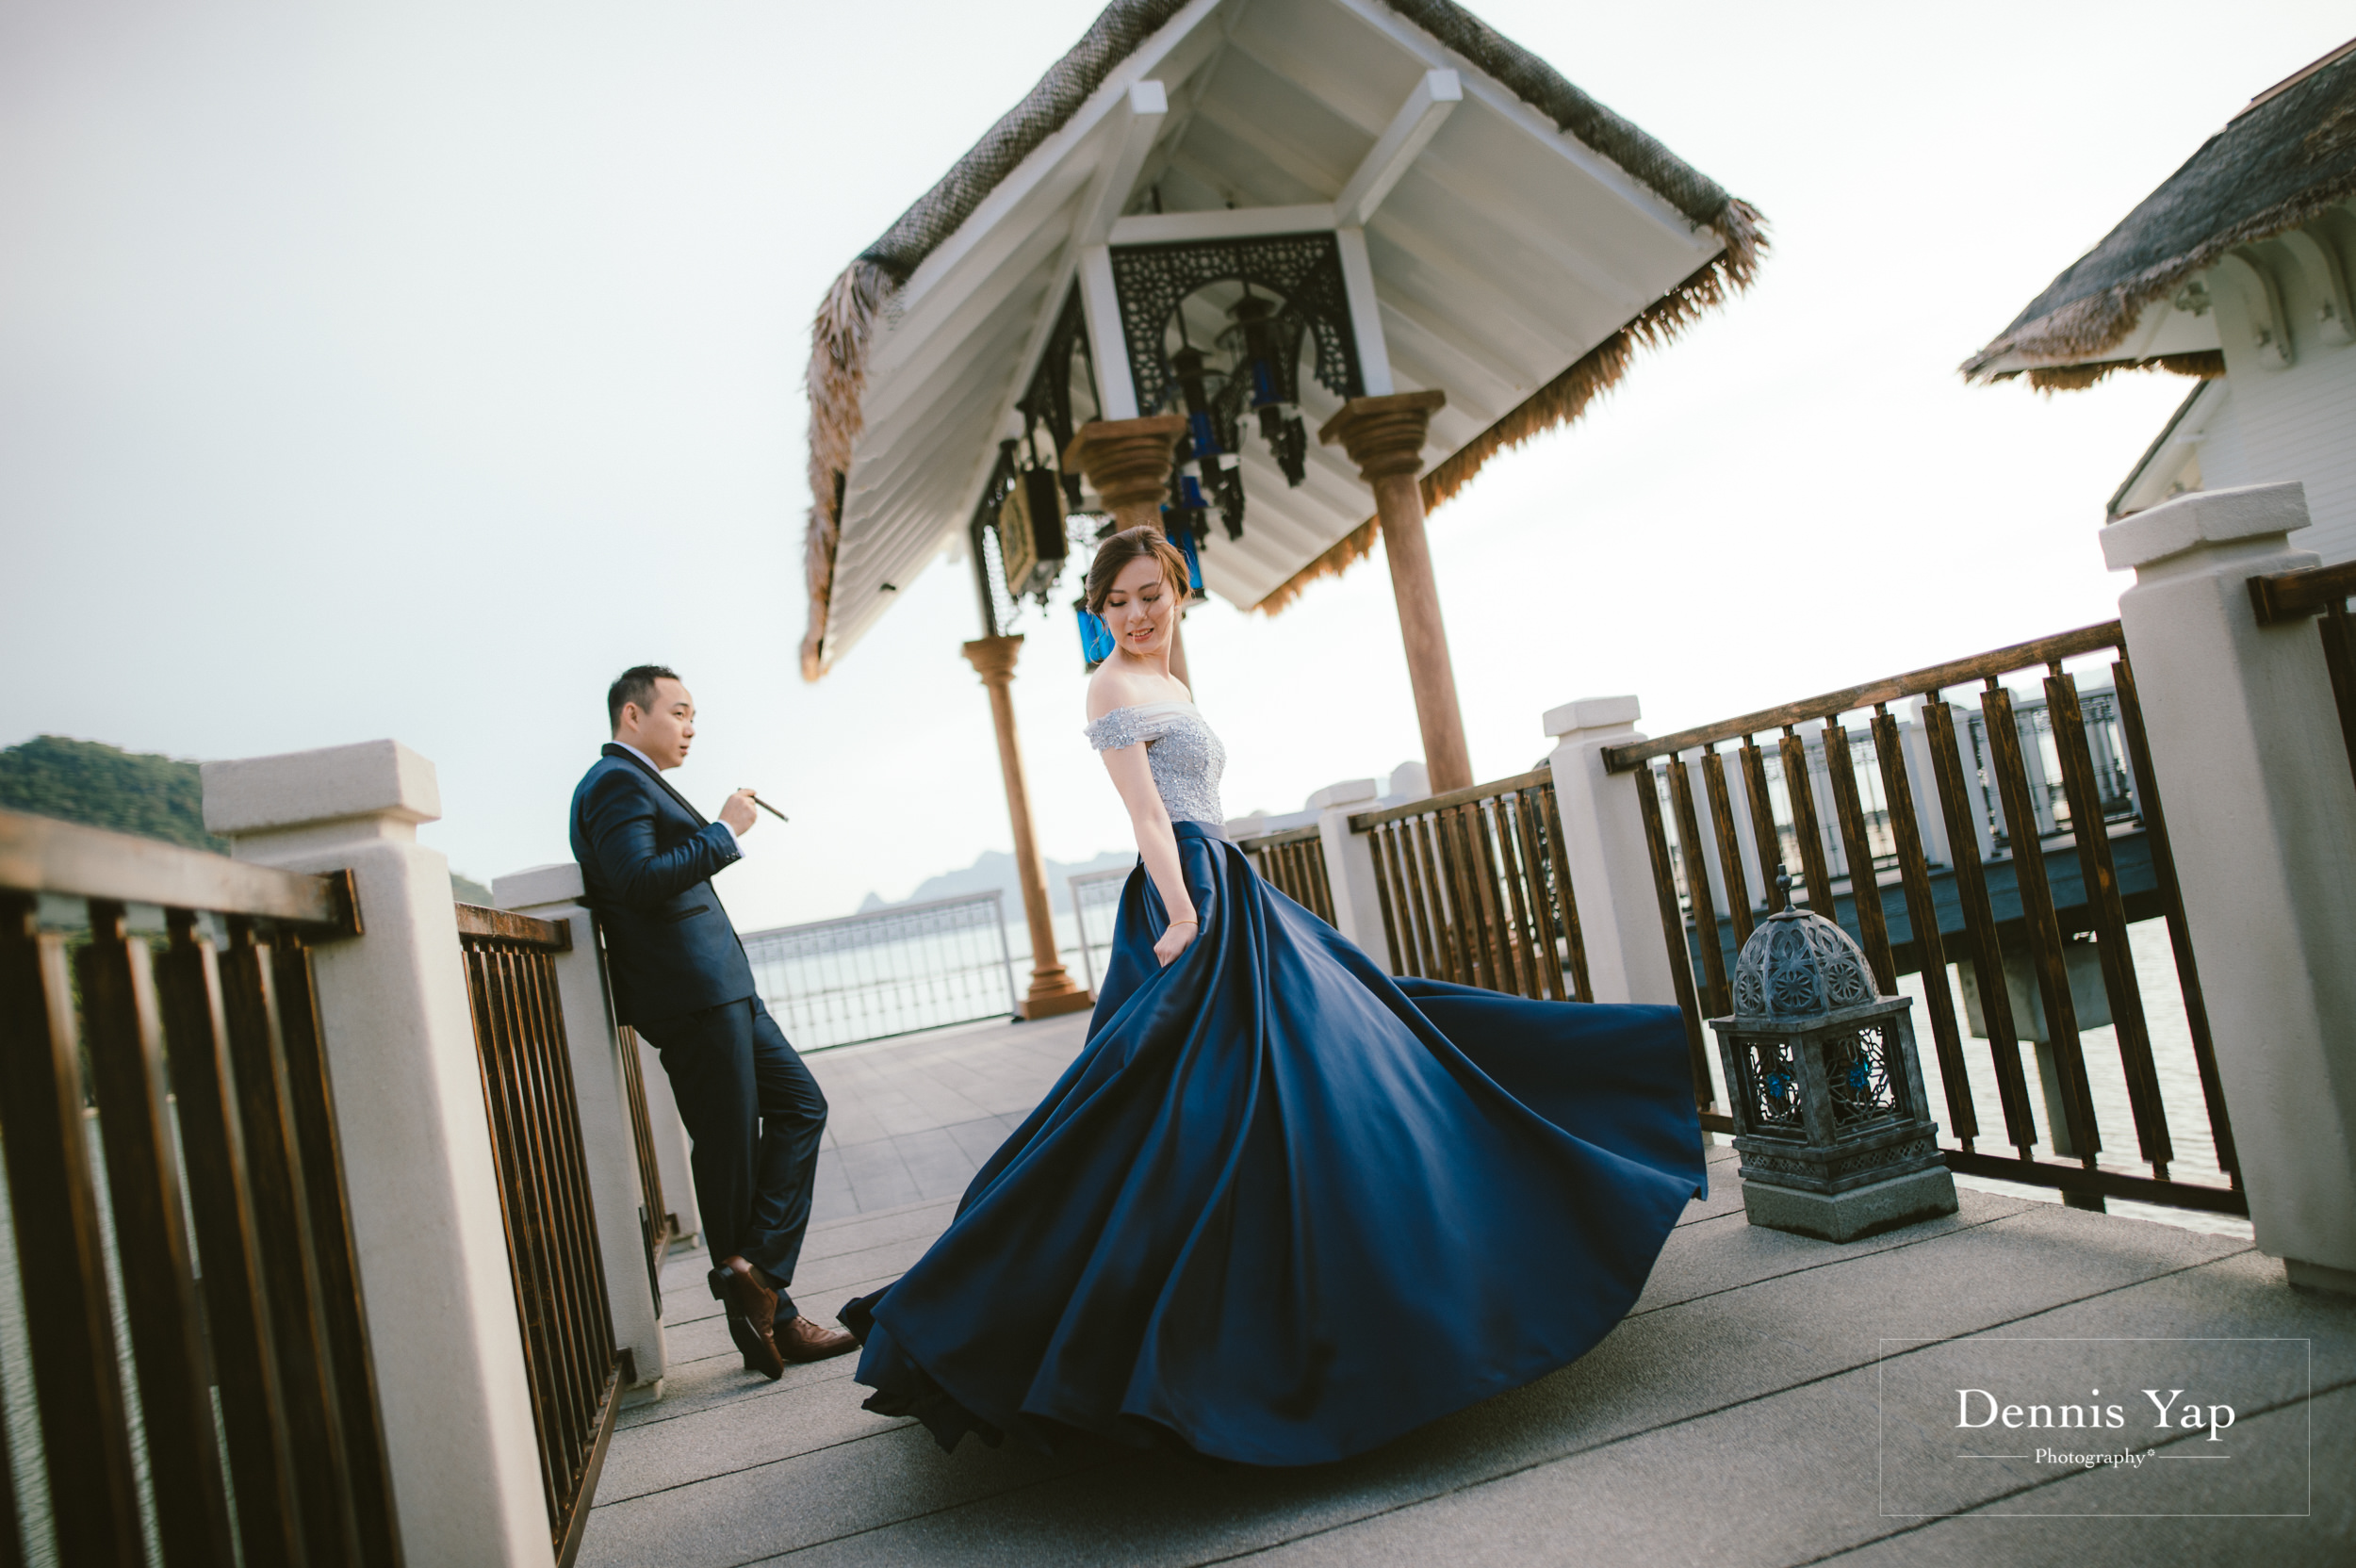 cross grace pre wedding st regis langkawi luxury style beloved dennis yap photography malaysia top wedding photographer dennis yap-36.jpg